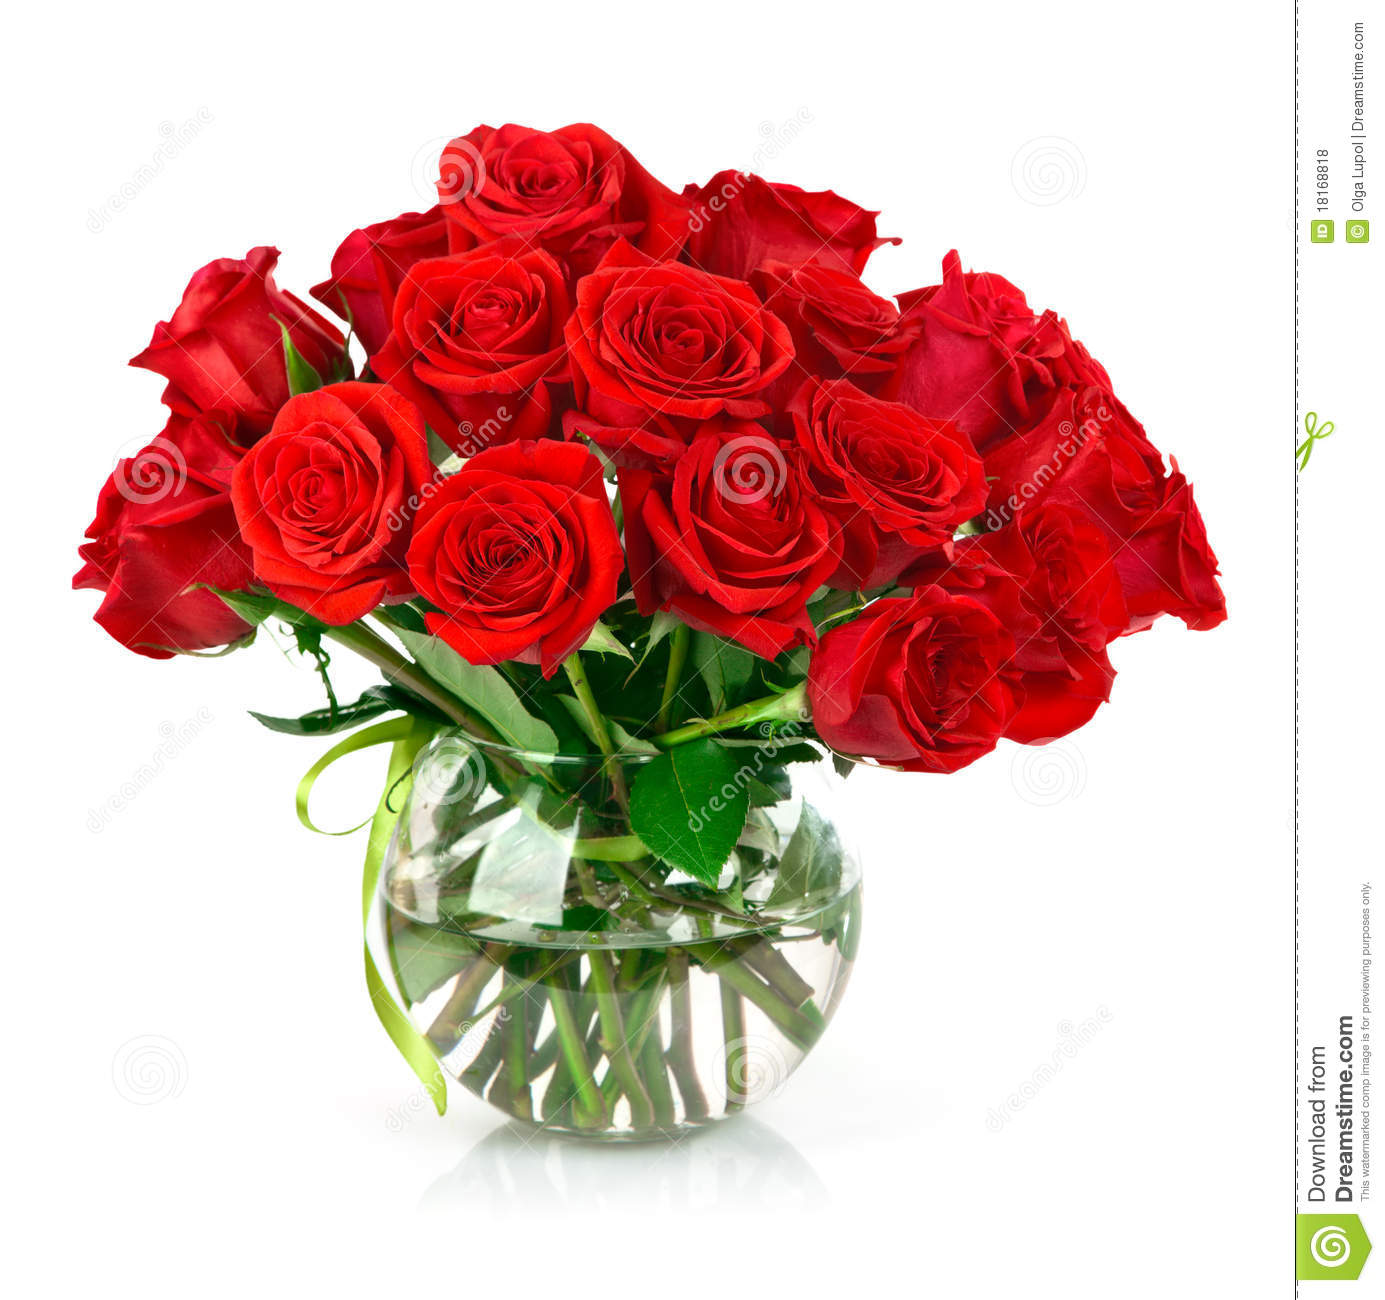 Free picture of bouquet of flowers clipart freeuse Bouquet Of Red Roses Royalty Free Stock Photos - Image: 18168818 clipart freeuse